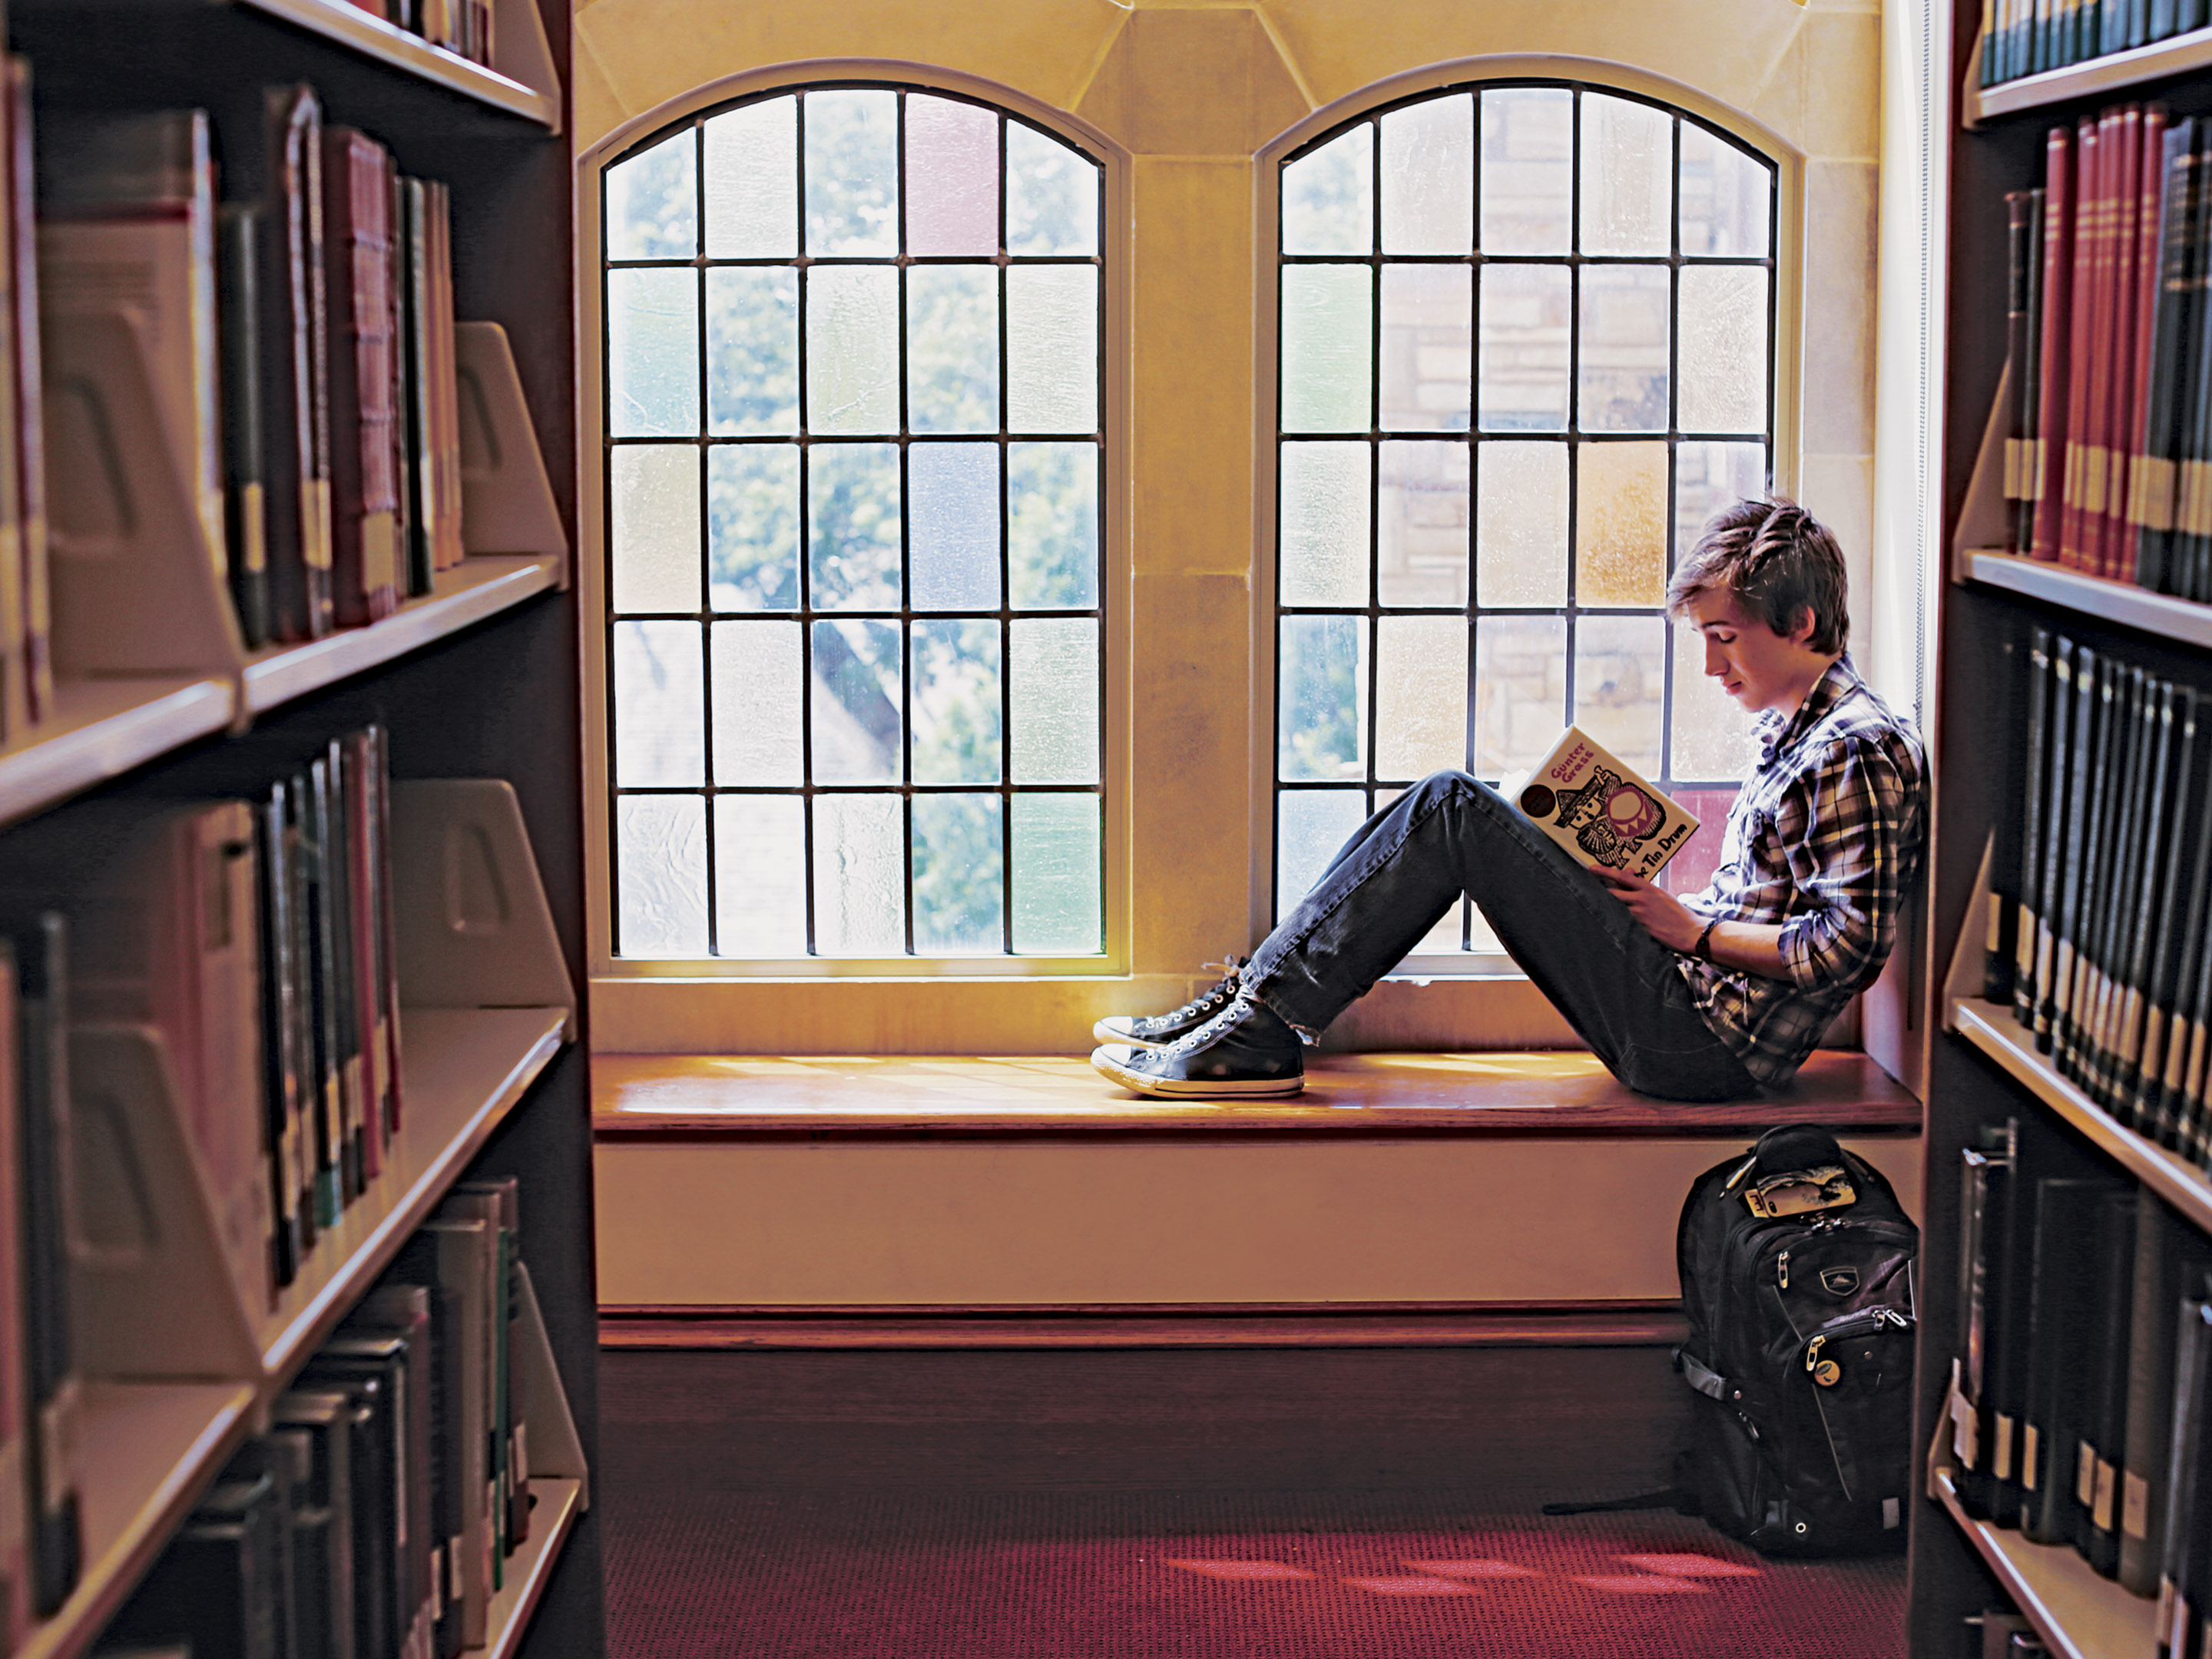 student reading a book in front of a window